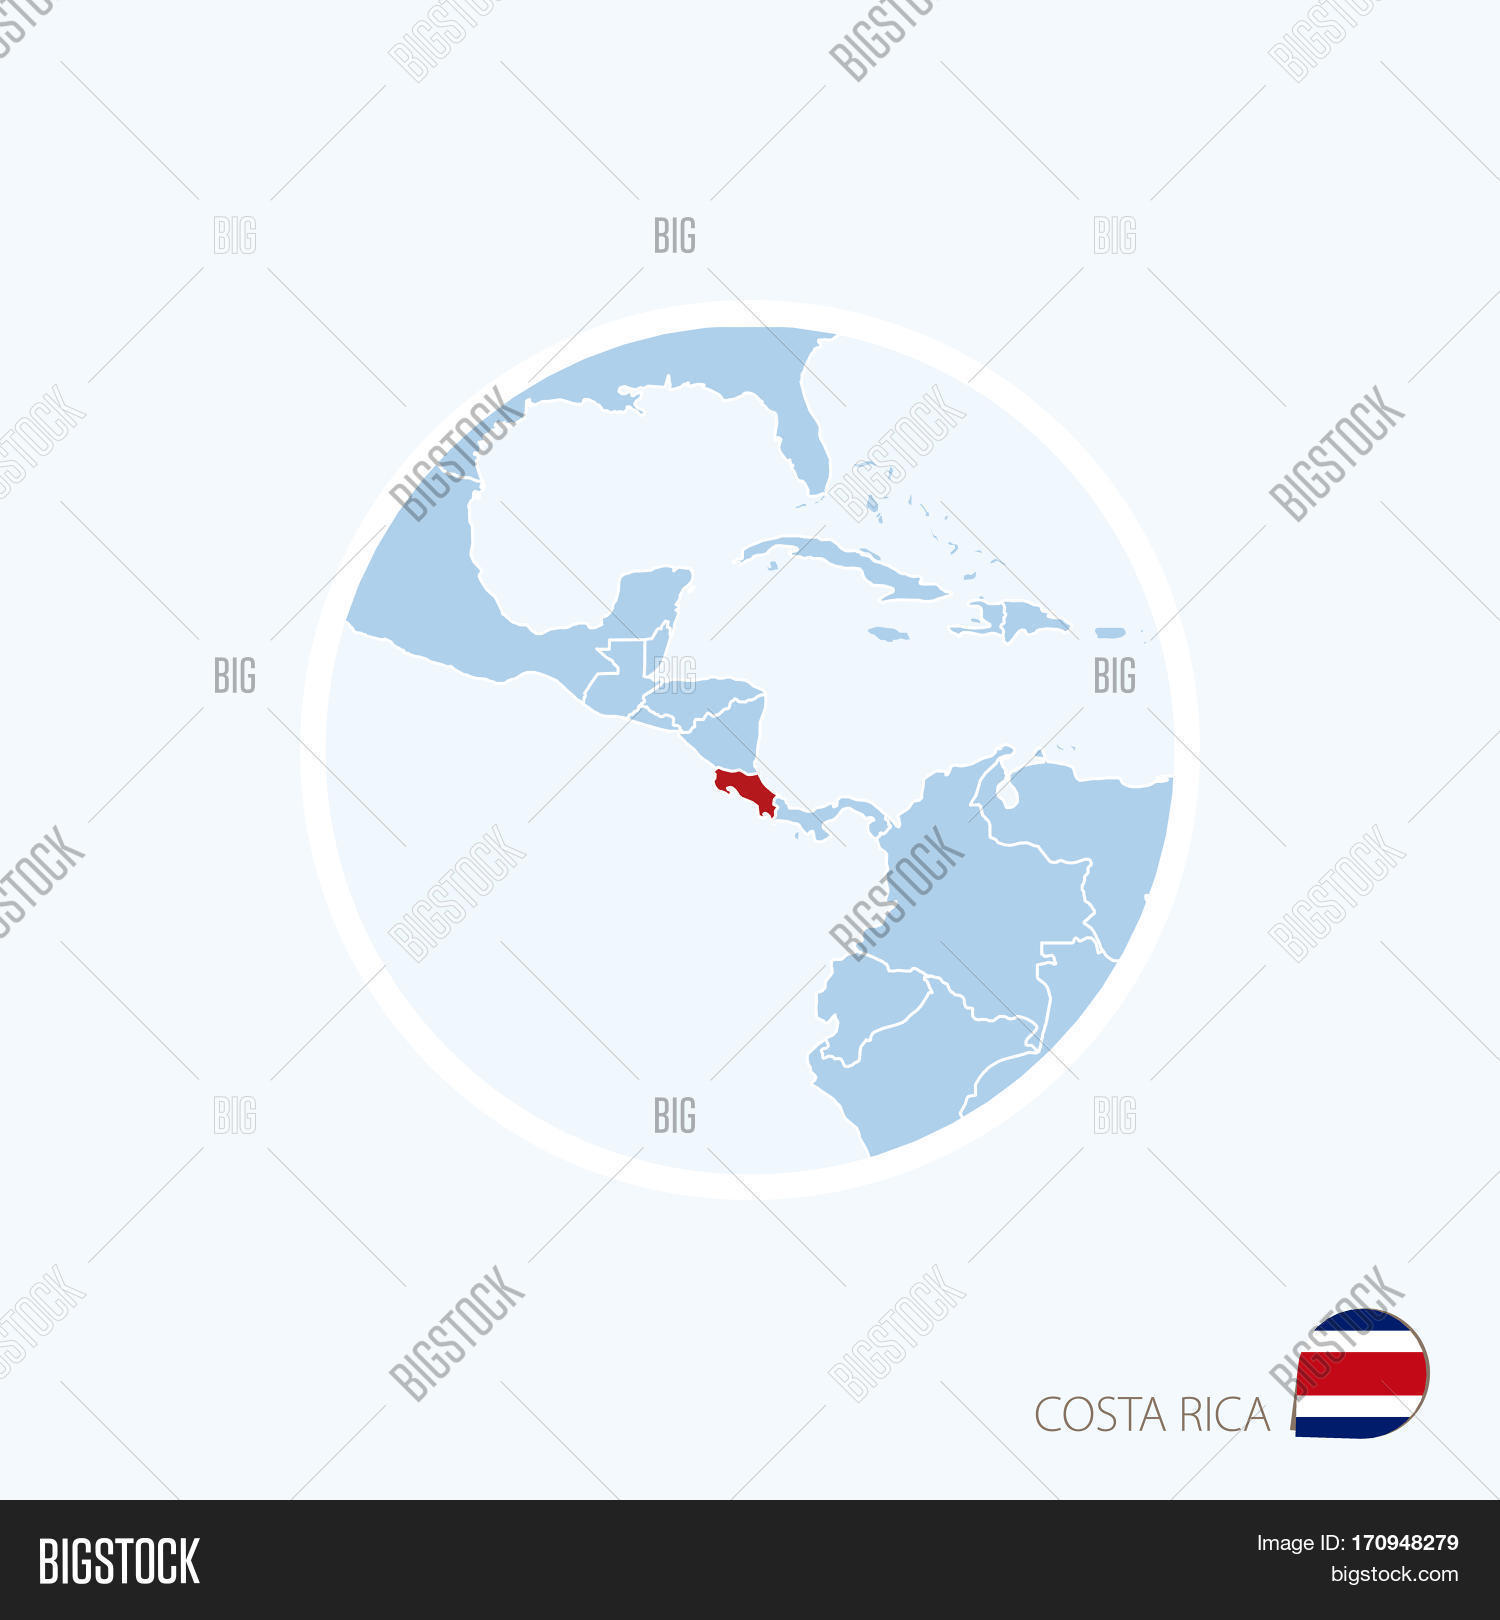 Map icon costa rica vector photo free trial bigstock map icon of costa rica blue map of central america with highlighted costa rica in gumiabroncs Images